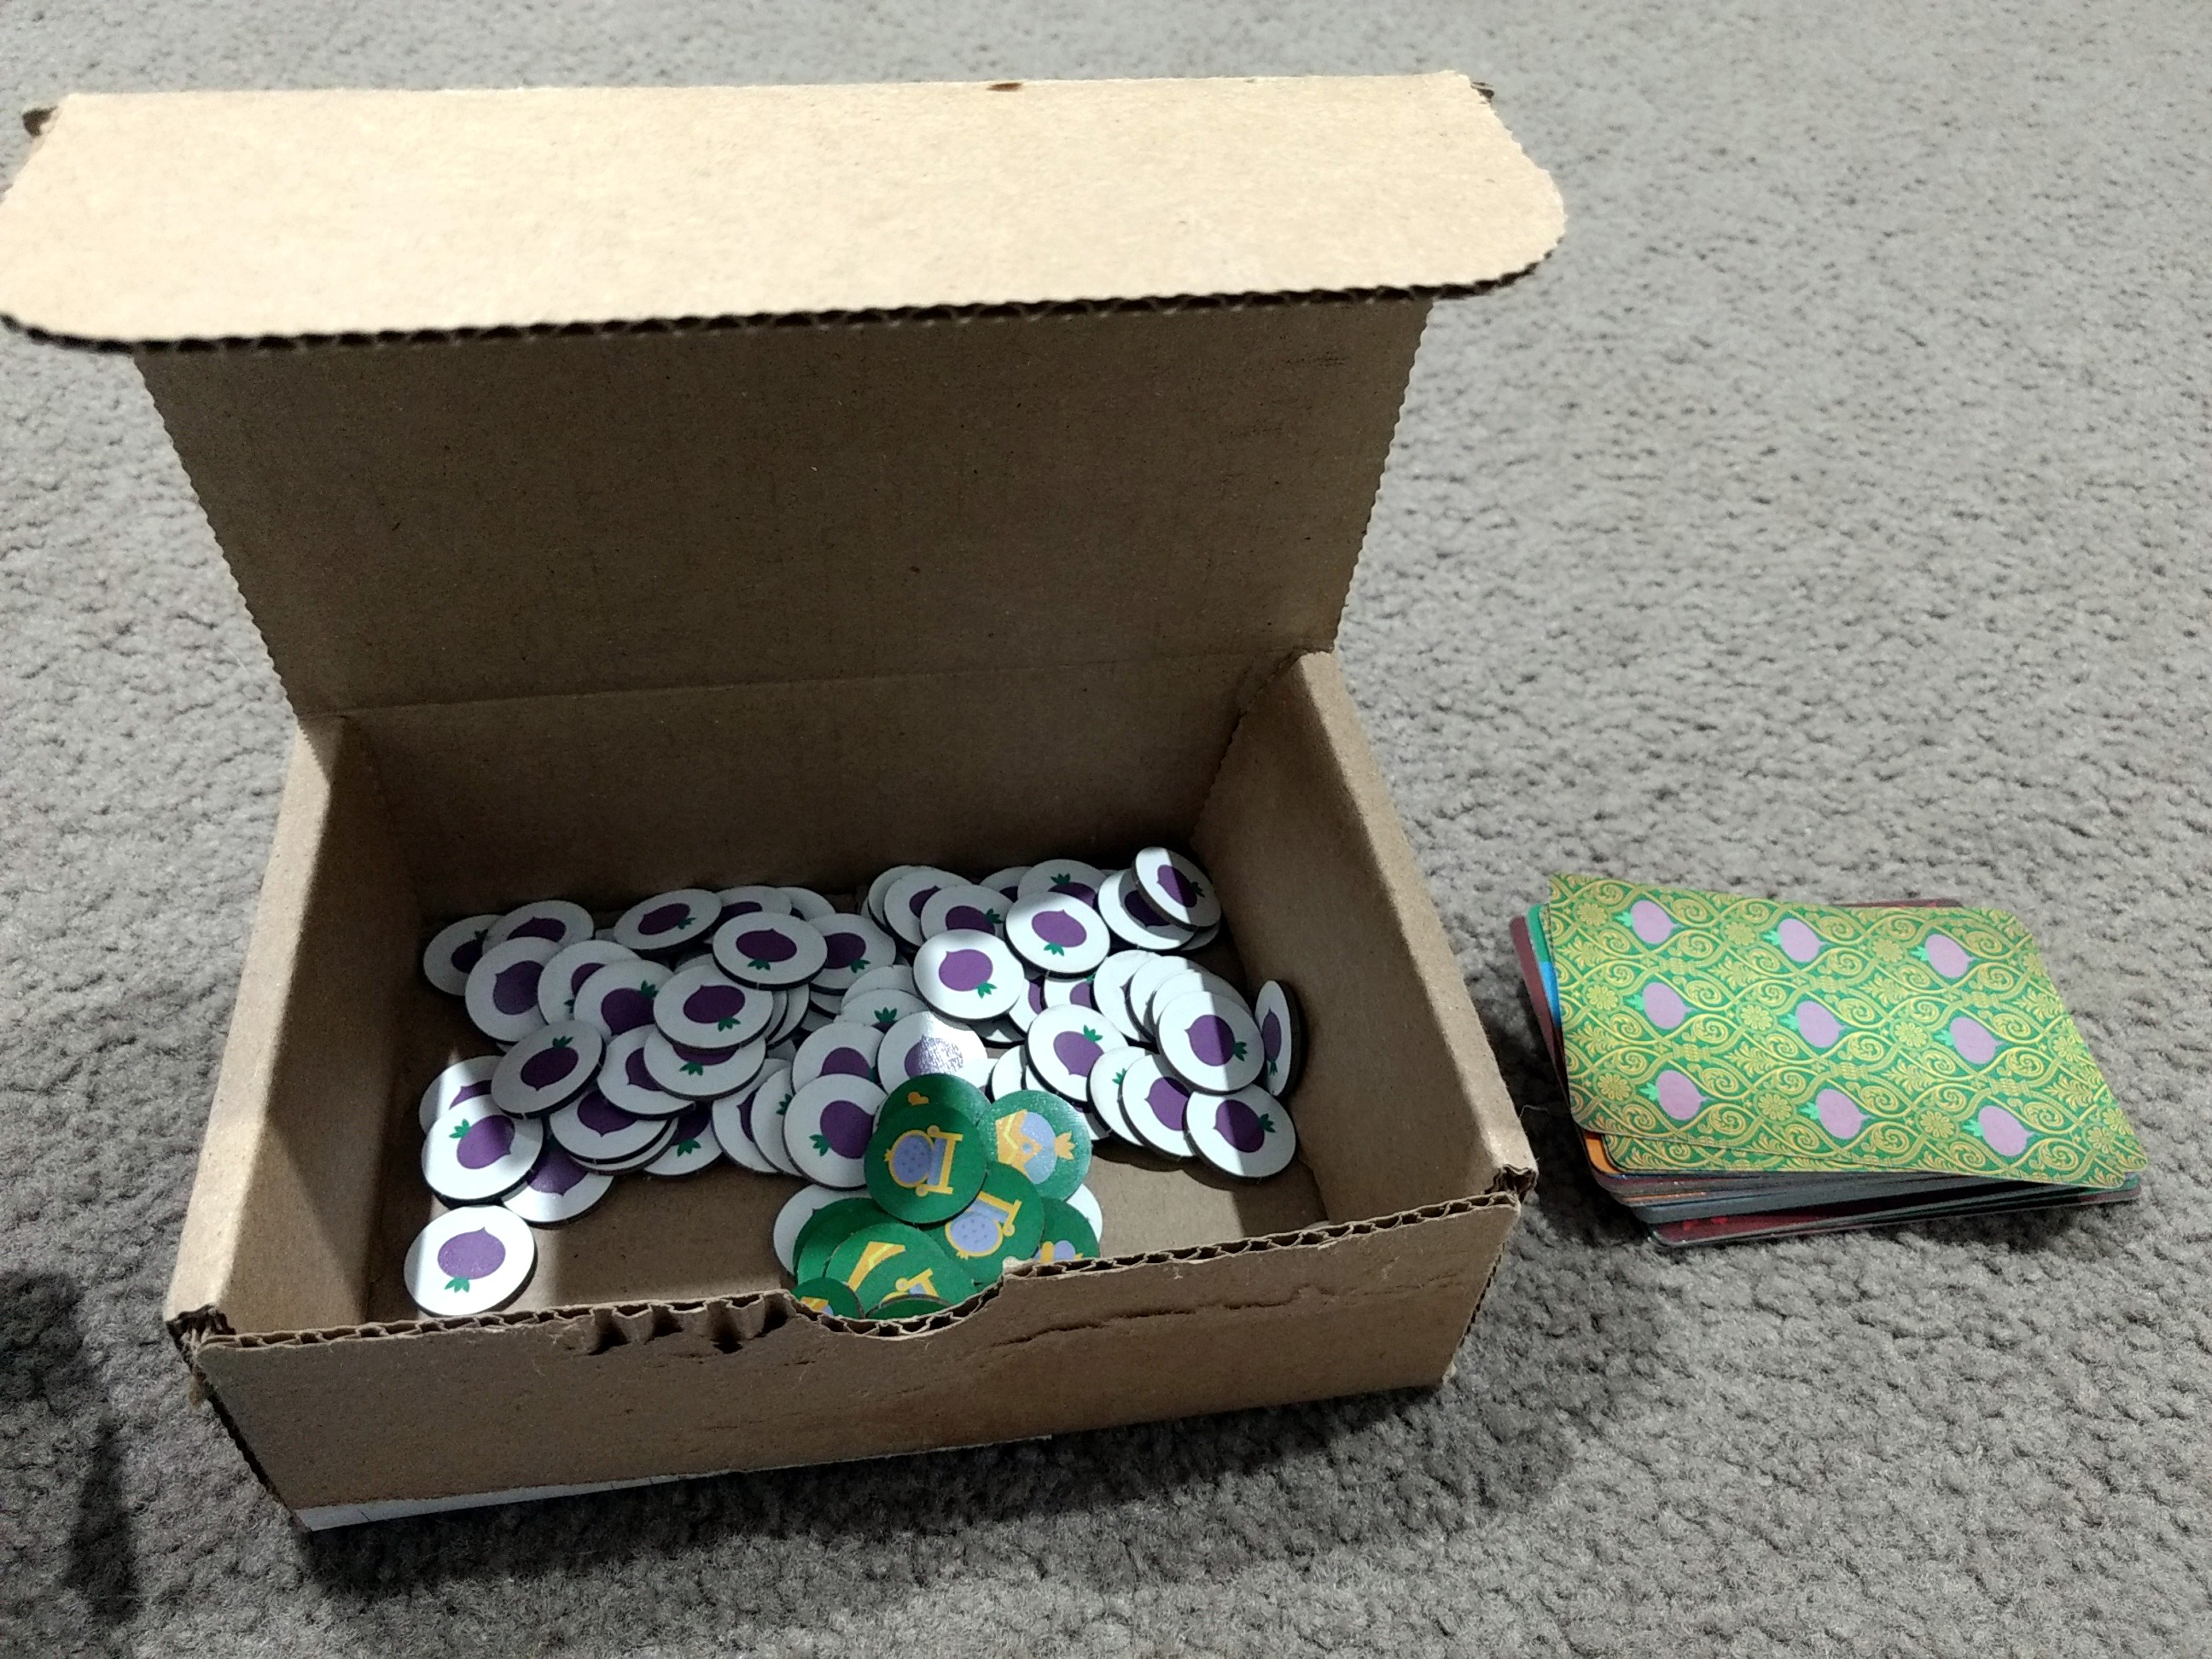 All components that come in Village Pillage. Turnip tokens, crown tokens, and a deck of cards.